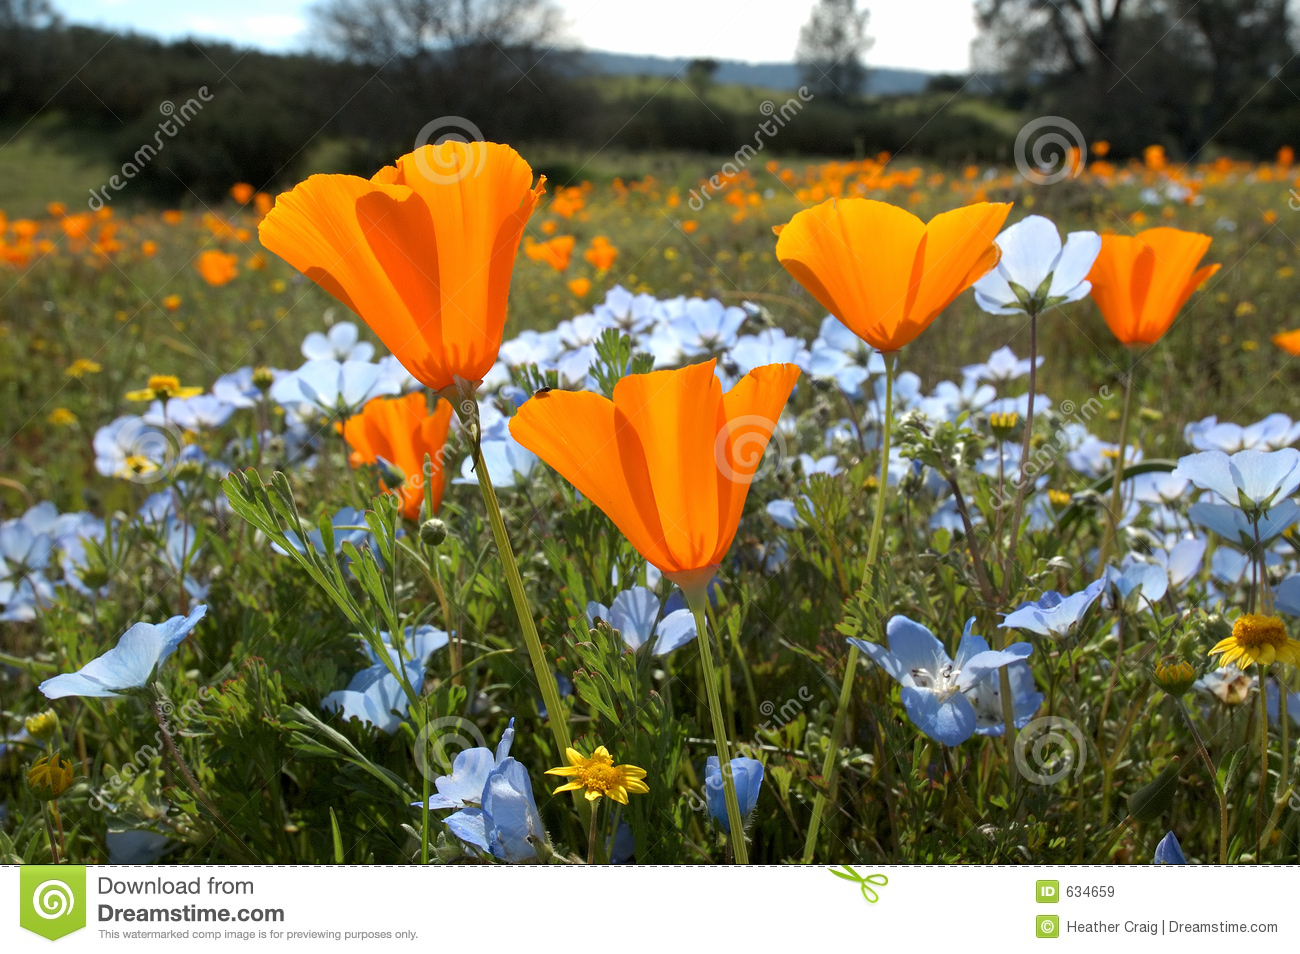 Download Bug's Eye View: California Poppy, Baby Blue Eyes, And Goldfields Stock Image - Image of detail, yellow: 634659